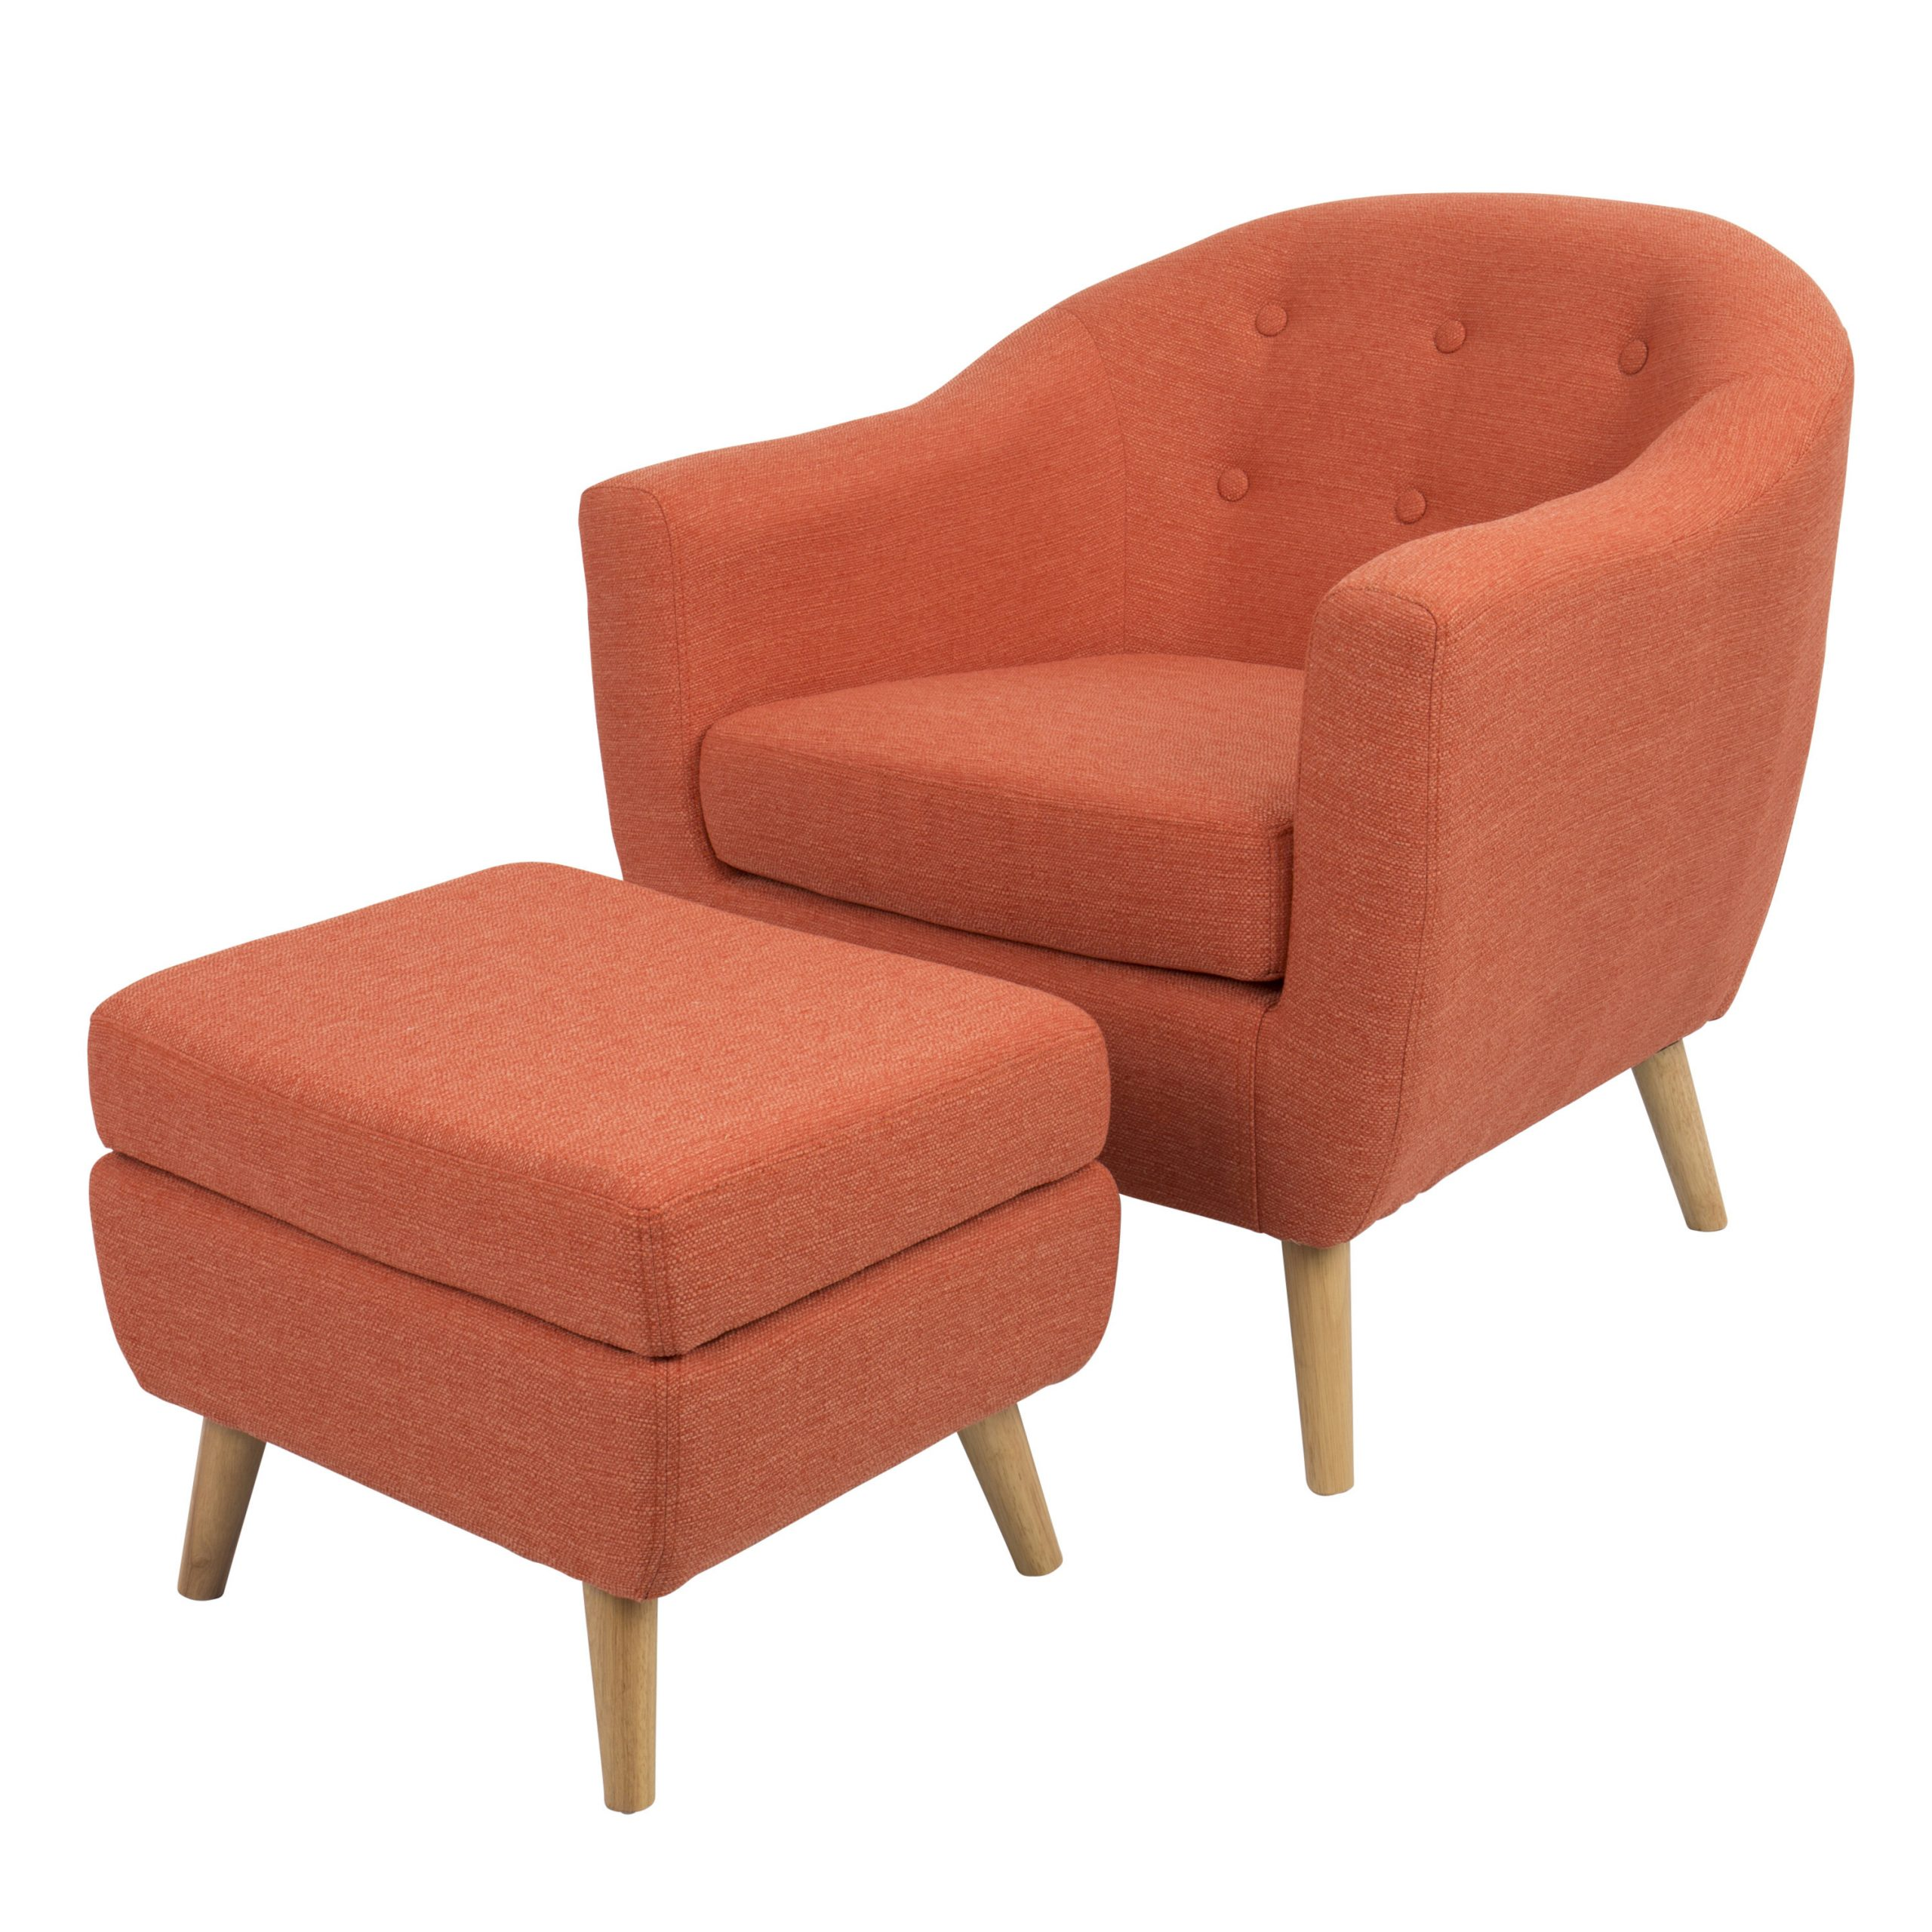 Most Popular Harmon Cloud Barrel Chairs And Ottoman Throughout Harmon Cloud Barrel Chair And Ottoman (View 8 of 20)